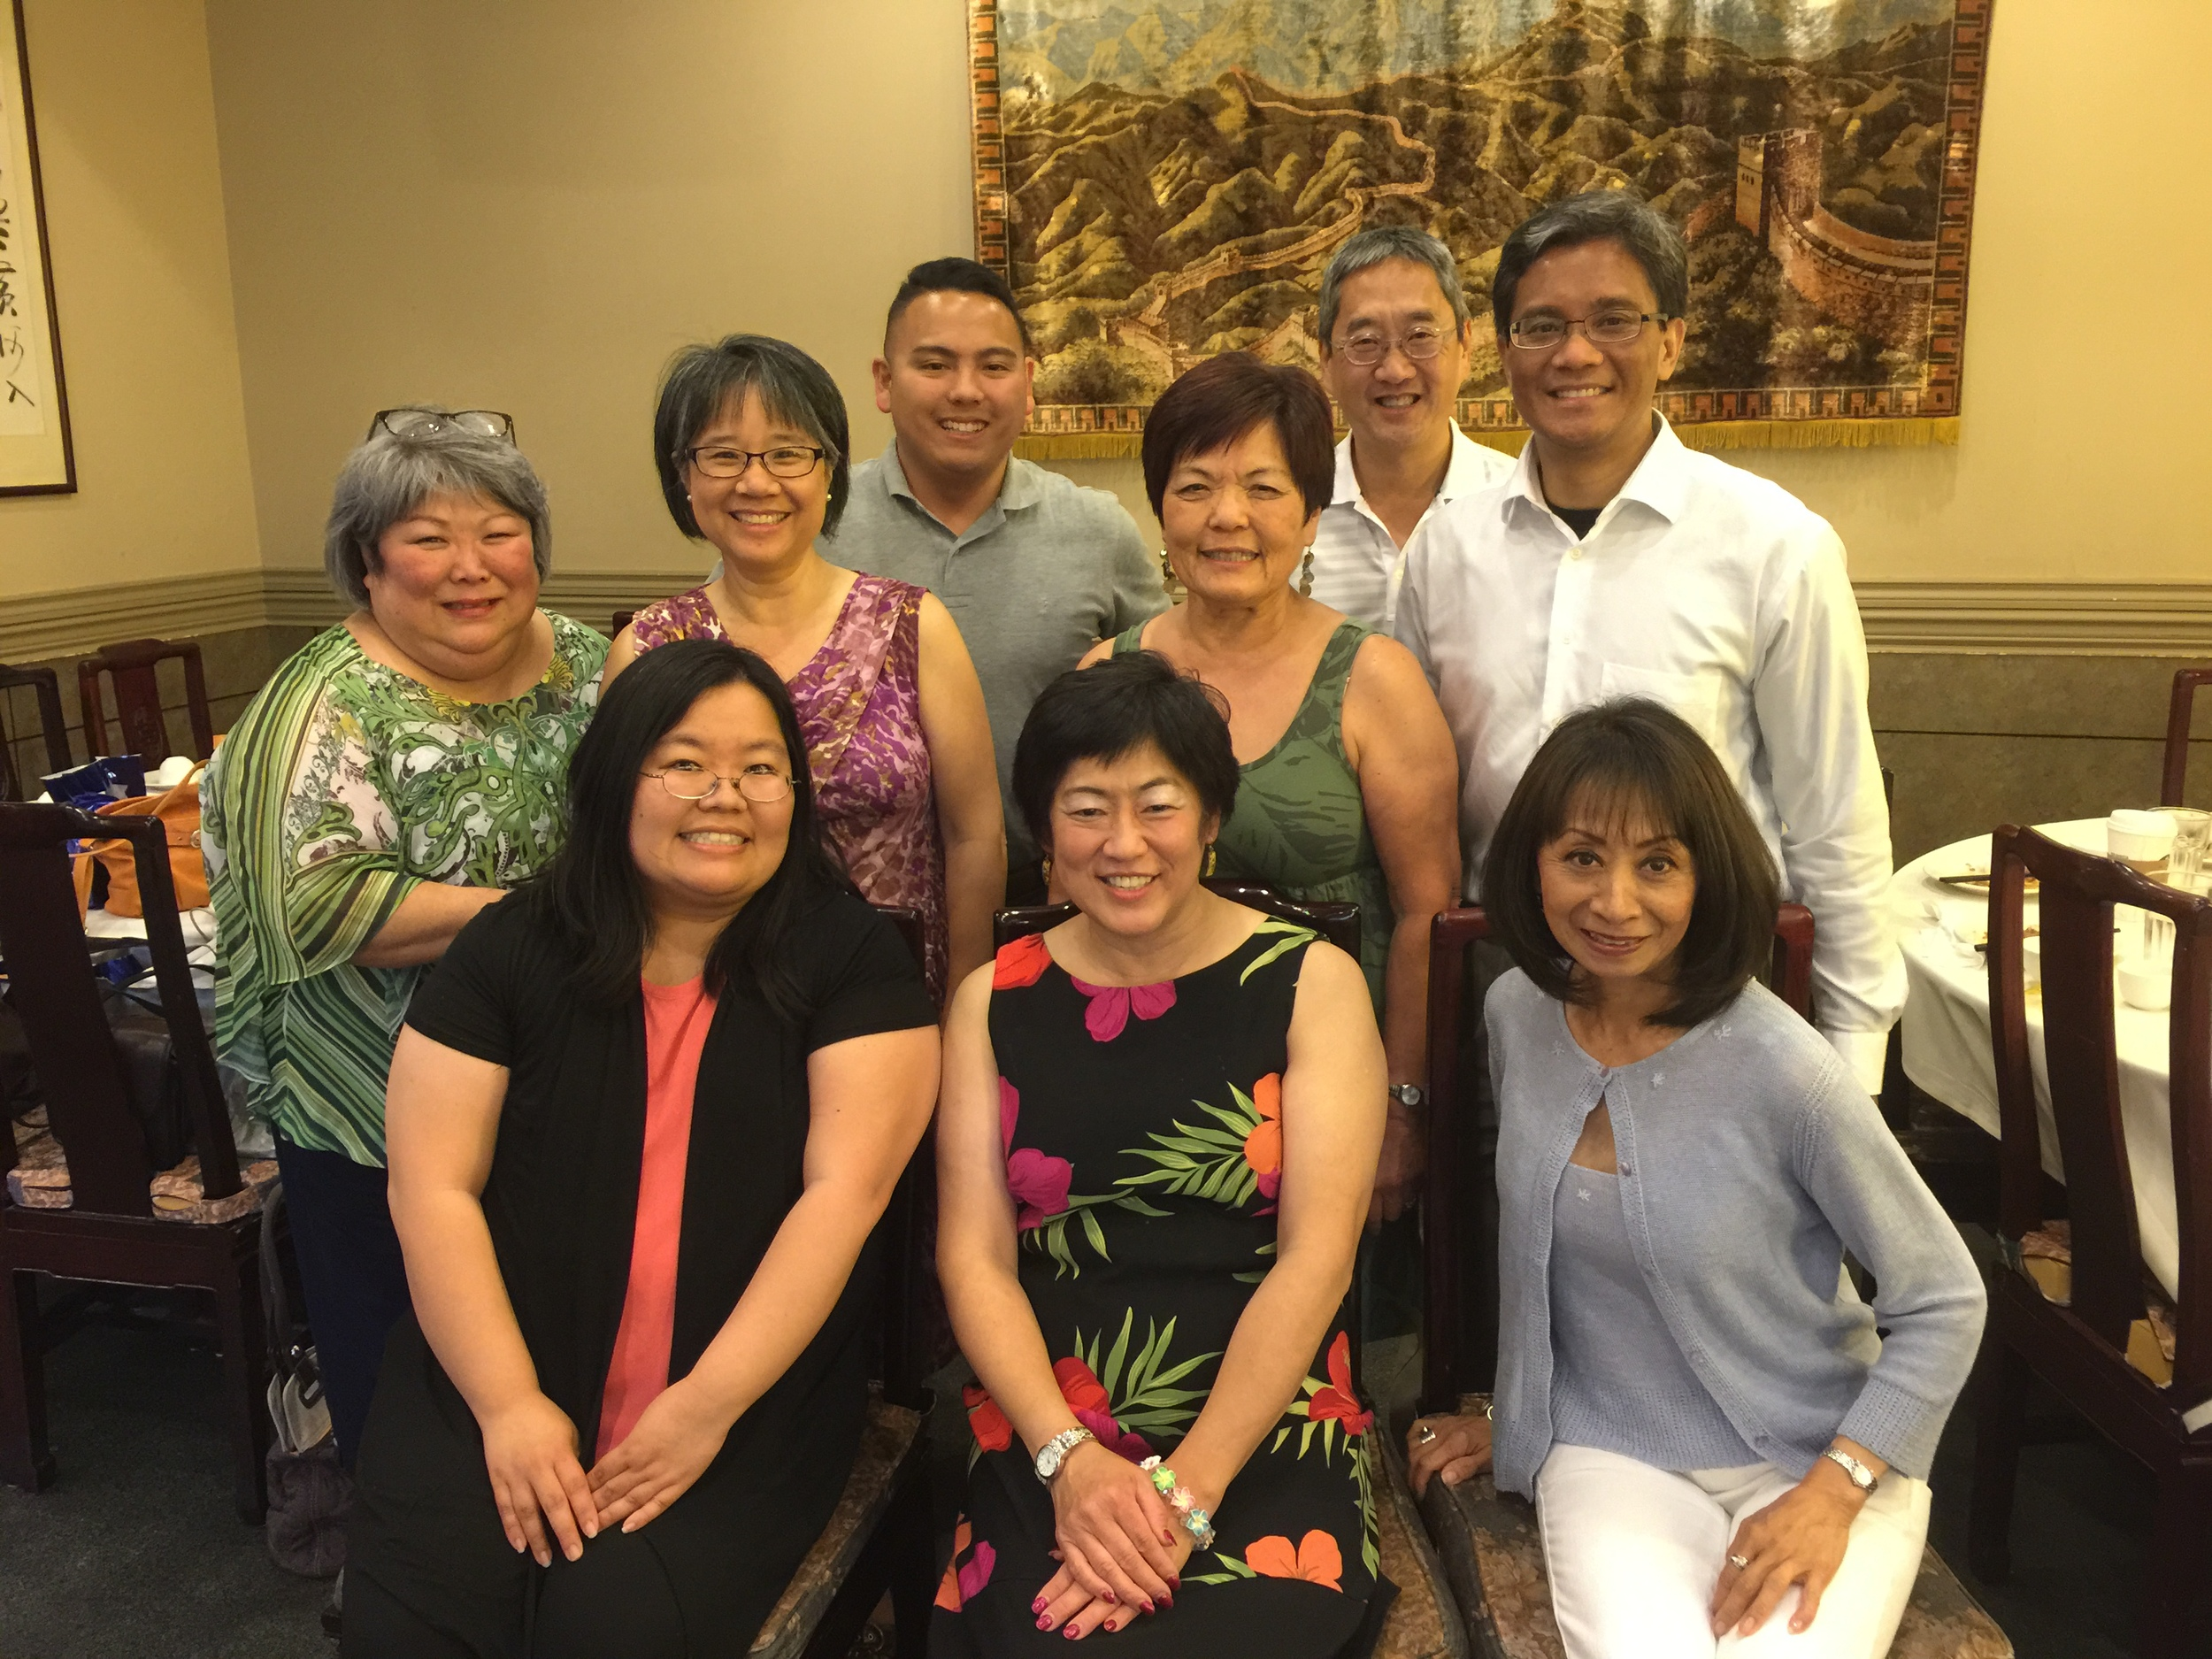 Recently, Marci attended an alumni dinner.    Back:  Sandy Hedington (EDI Board Member), Marie Chow, Joe Darza, Char Grinolds (EDI Co-Chair), Darryl Hue, and Ador Yano.   Front : Marci Nakano (EDI Executive Director), Elaine Kitamura, and Vanna Novak (EDI Board Member/Co-Founder)